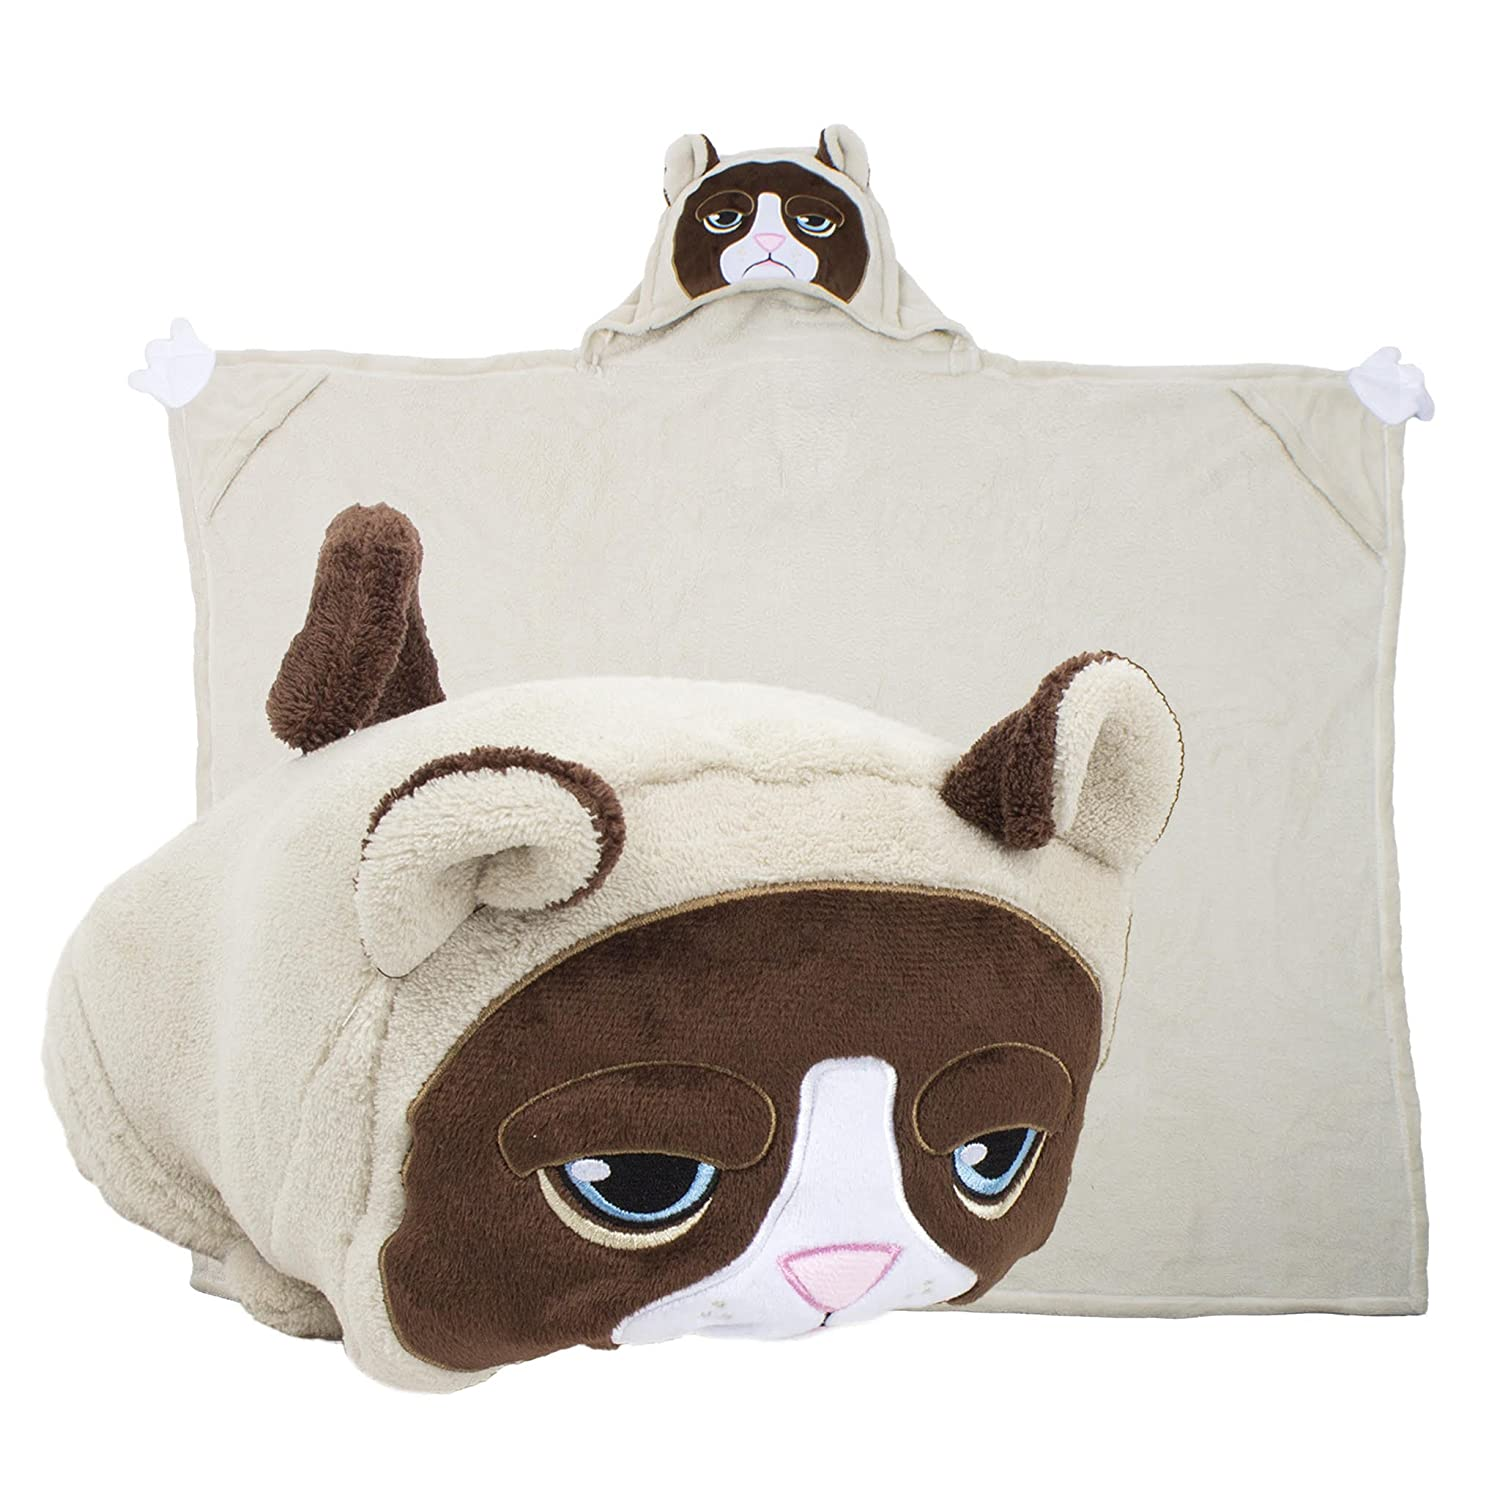 Stuffed Animal Blanket & Pillow; Grumpy Cat